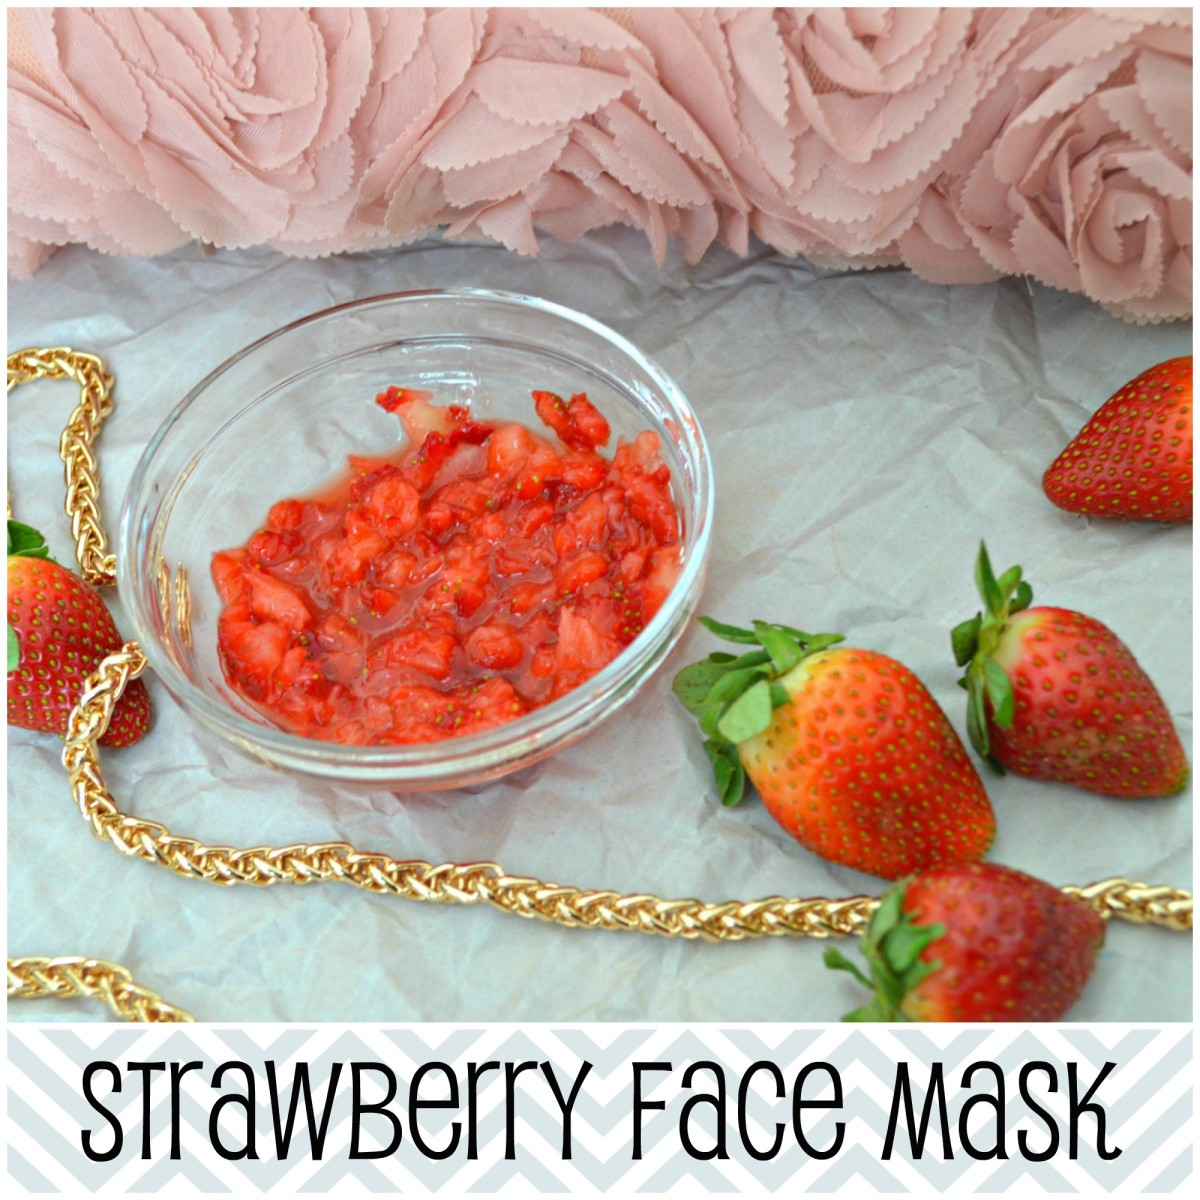 Strawberry face mask to get your skin bright, clean and simply glowing!